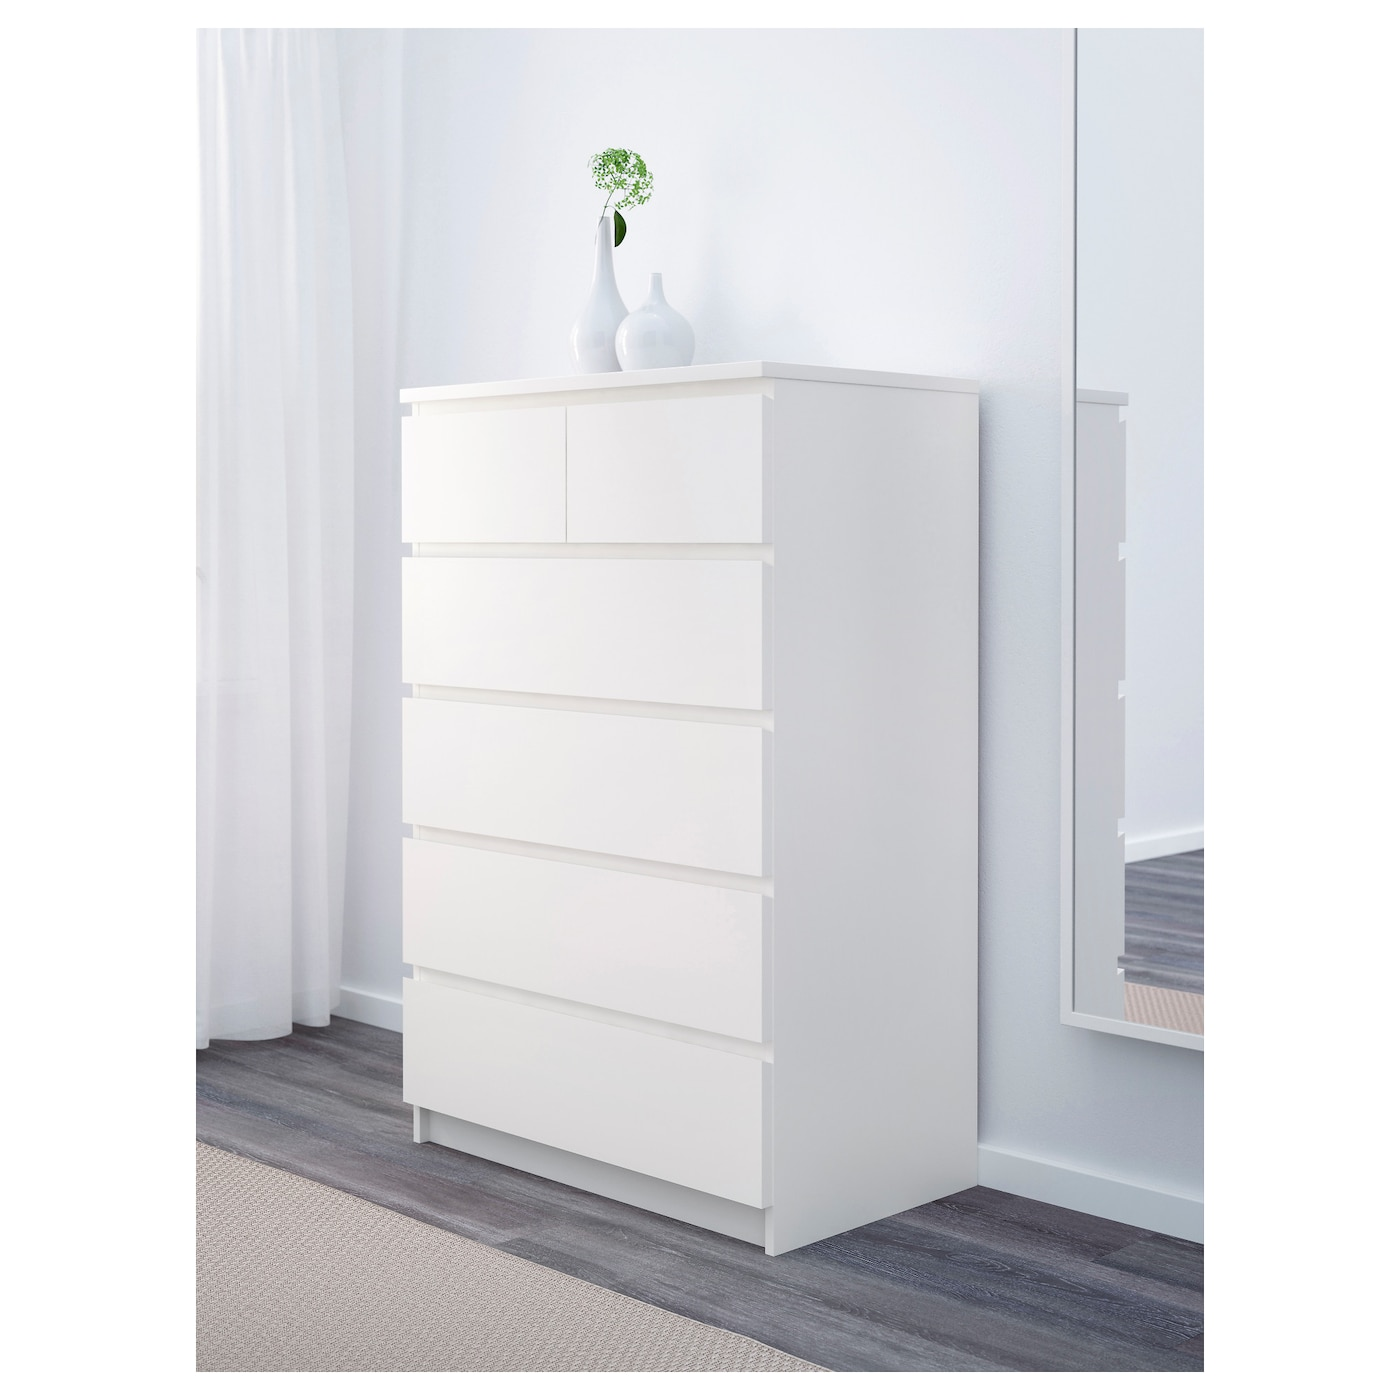 Malm Chest Of 6 Drawers White 80 X 123 Cm Ikea